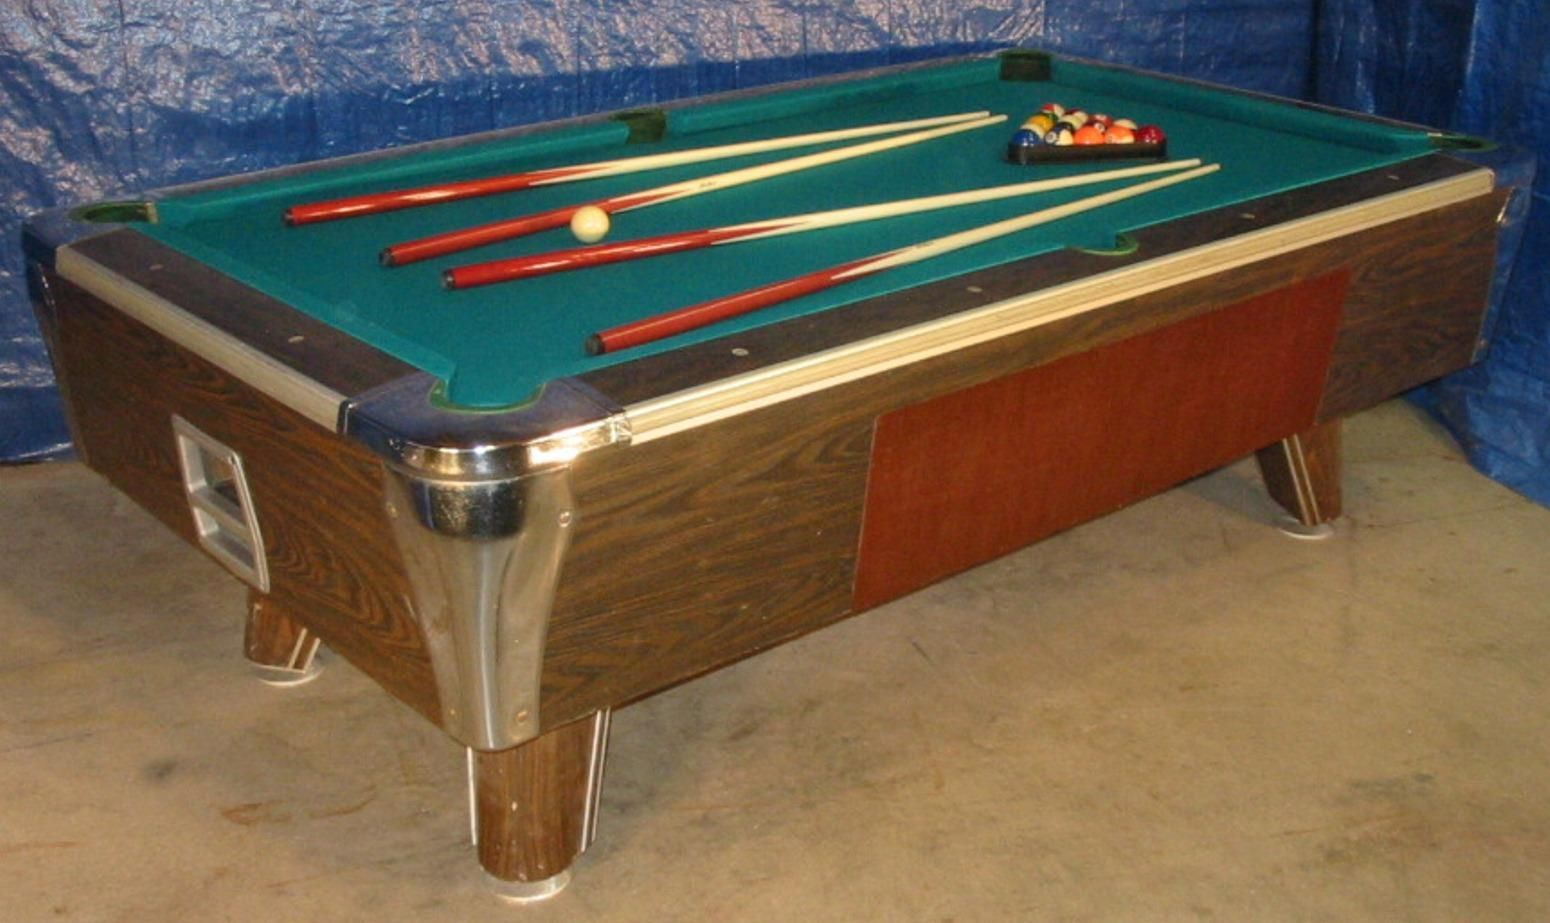 Irving kaye bar size 7 pool table set up for home use vintage irving kaye bar size 7 pool table set up for home use watchthetrailerfo